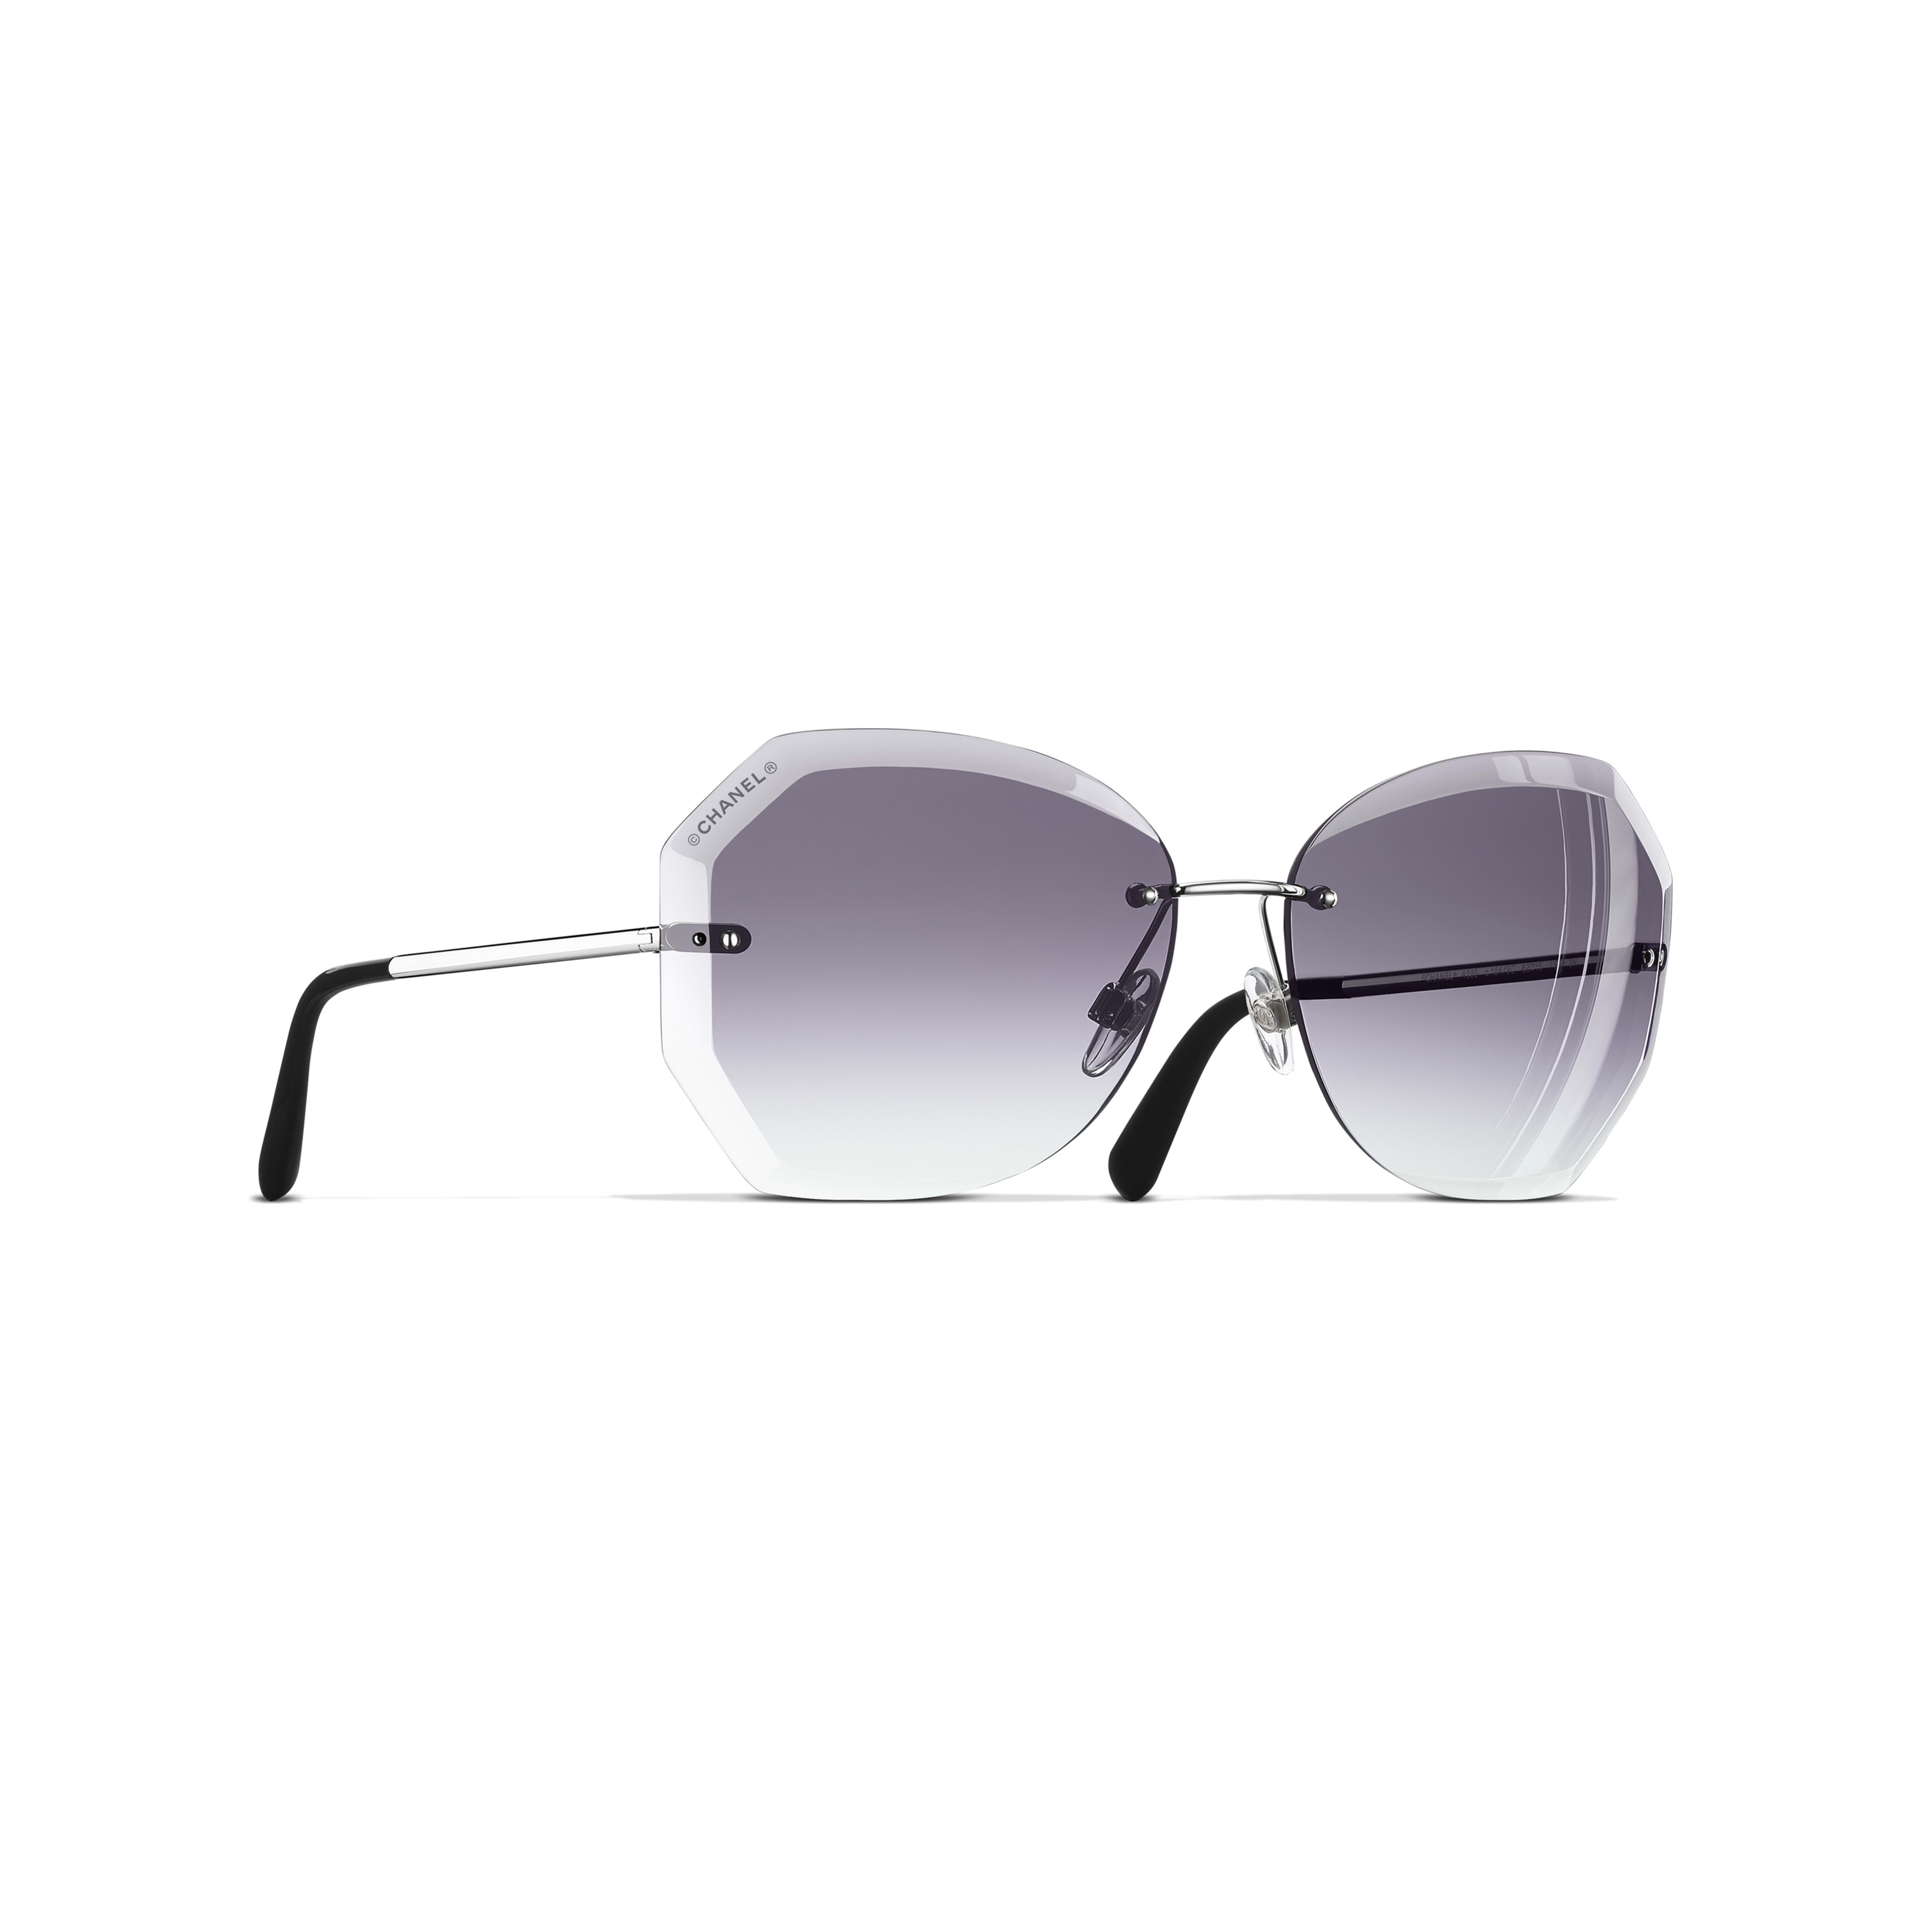 Round Sunglasses - Silver & Grey - Metal - Default view - see standard sized version